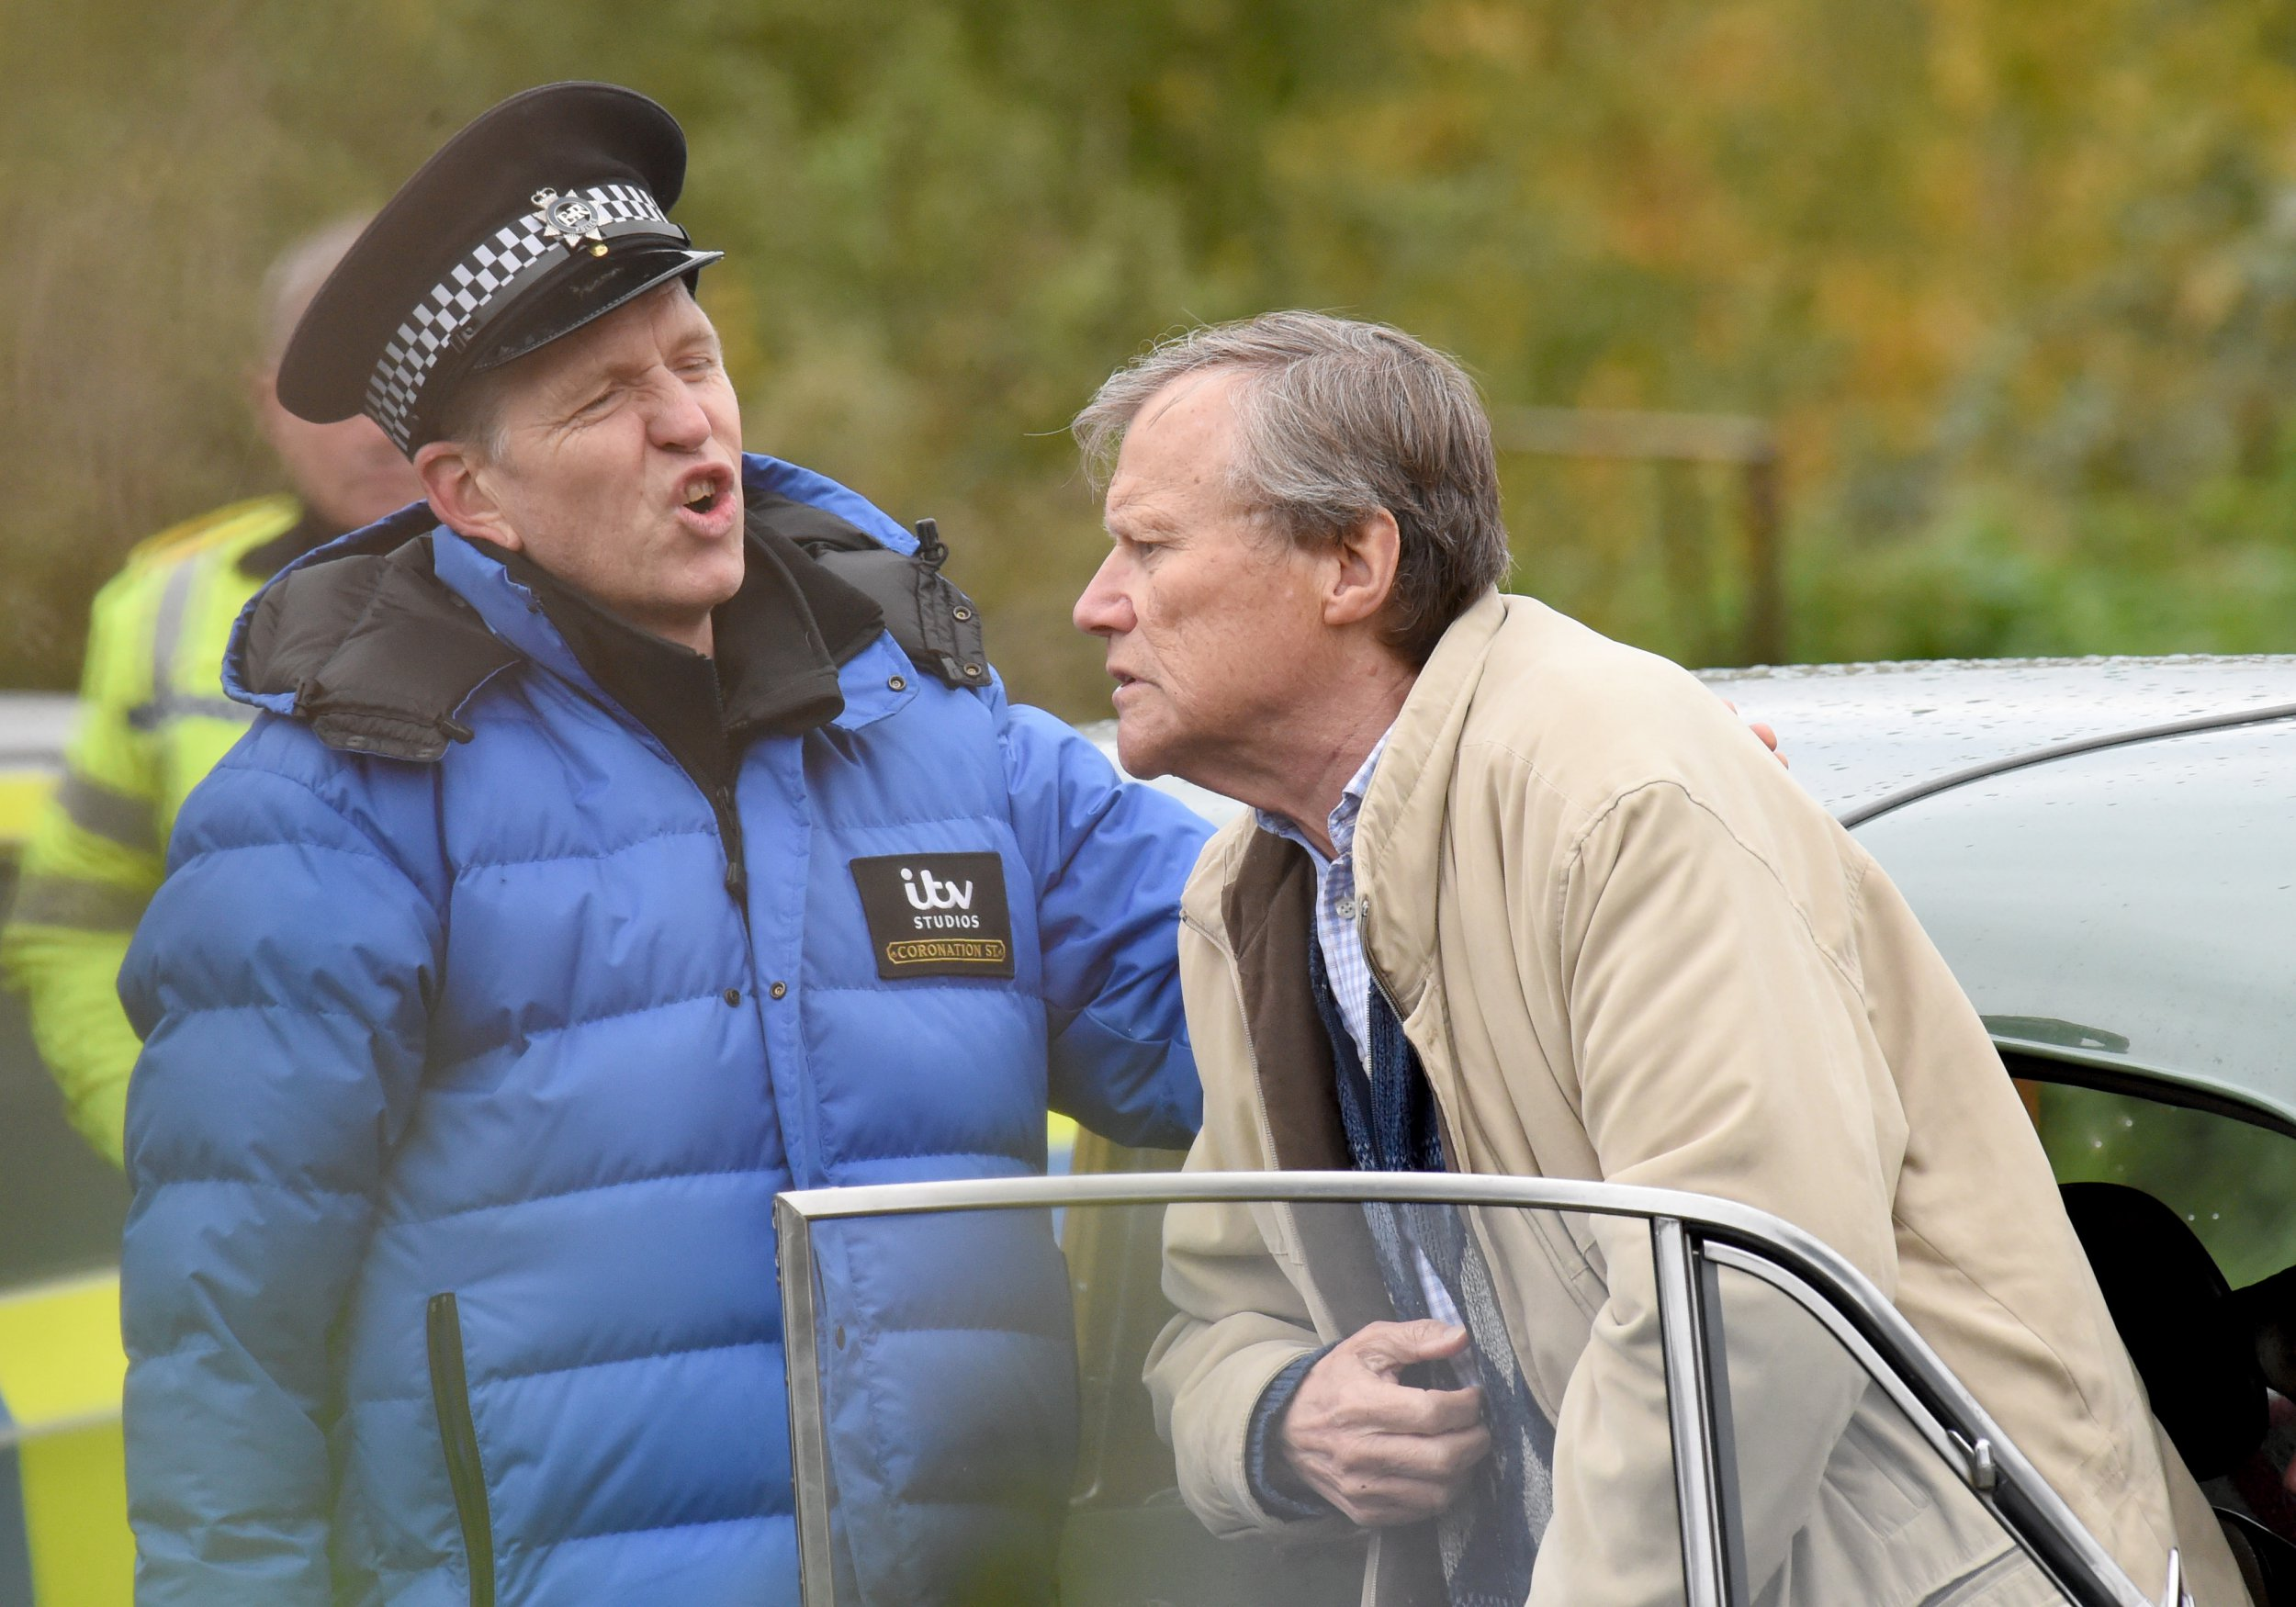 Dogging. Roy Cropper offers to help Evelyn look for her missing dog which she fears as been dognapped but during their stake out the windows of his classic Morris Minor are steamed up and attracting the attention of the police. David Neilson plays Roy and Maureen Lipman plays Evelyn. PIC BY MARK CAMPBELL/MCPIX 07778 526193